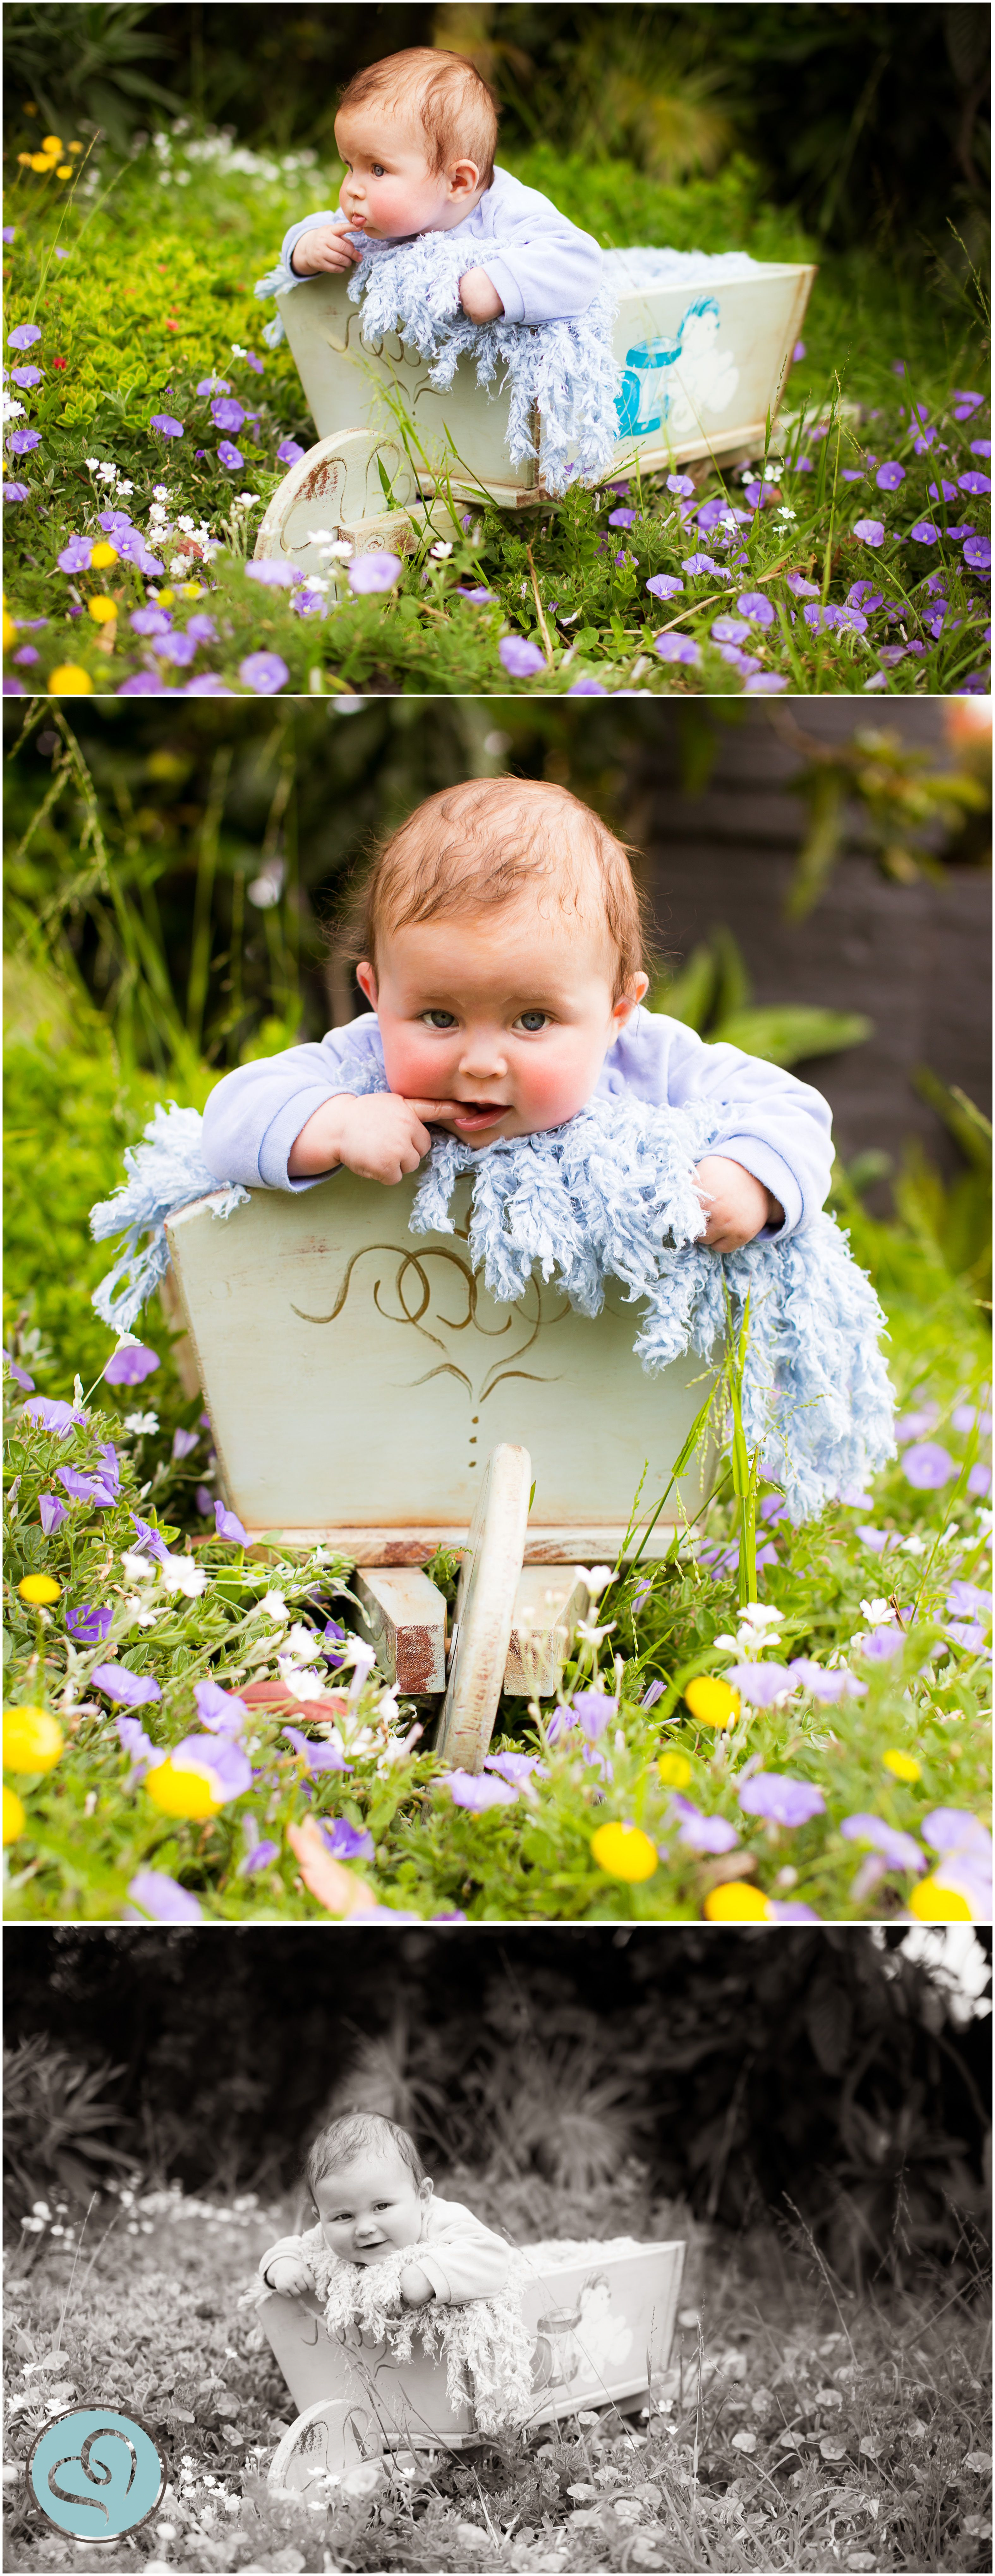 5 month old 6 month old baby photography prop wheelbarrow in 5 month old 6 month old baby photography prop wheelbarrow in garden negle Images